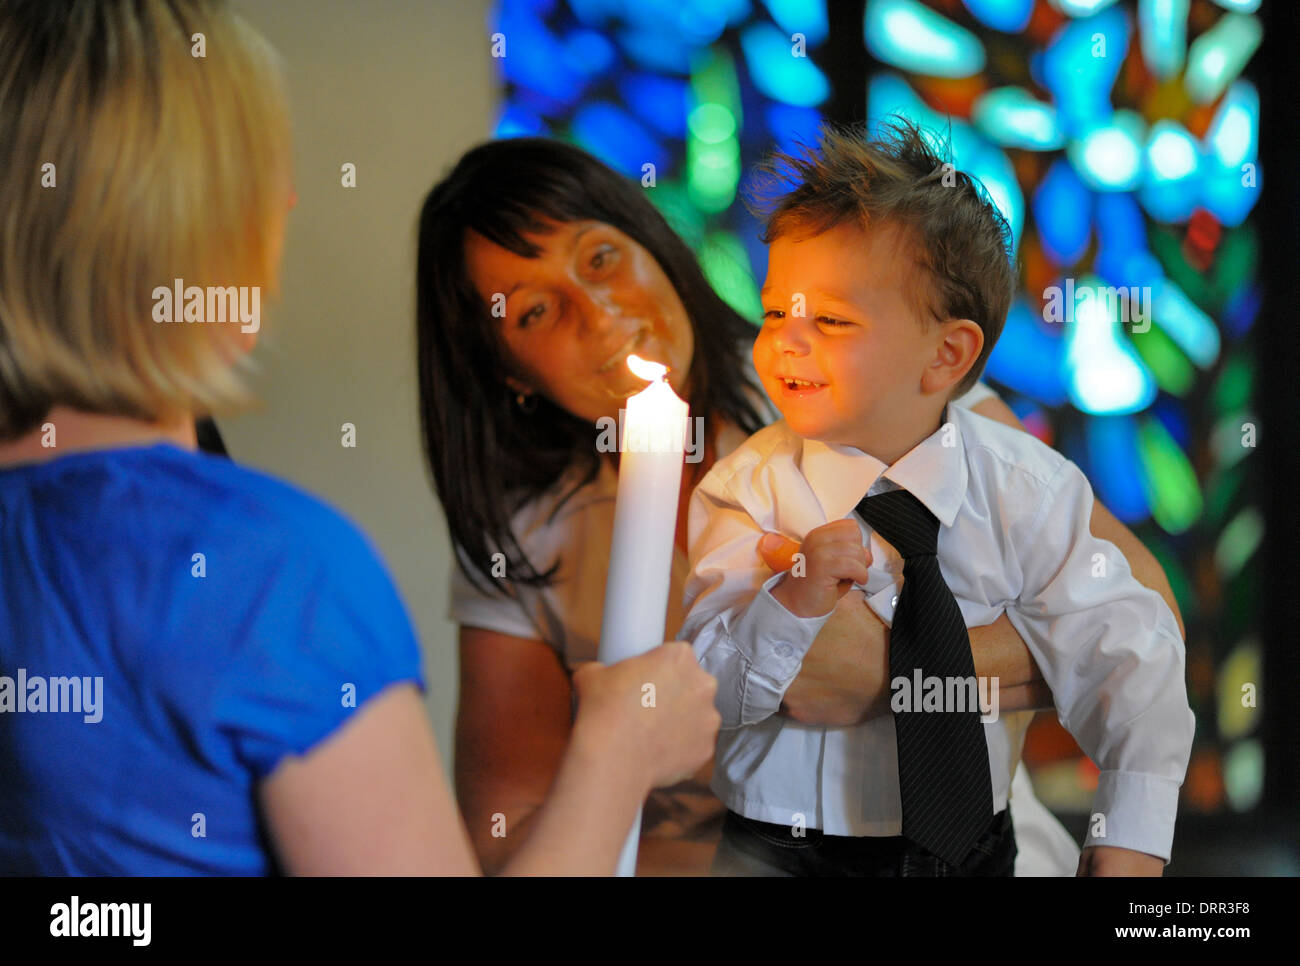 A boy blows out his baptism candle after his baptism. - Stock Image